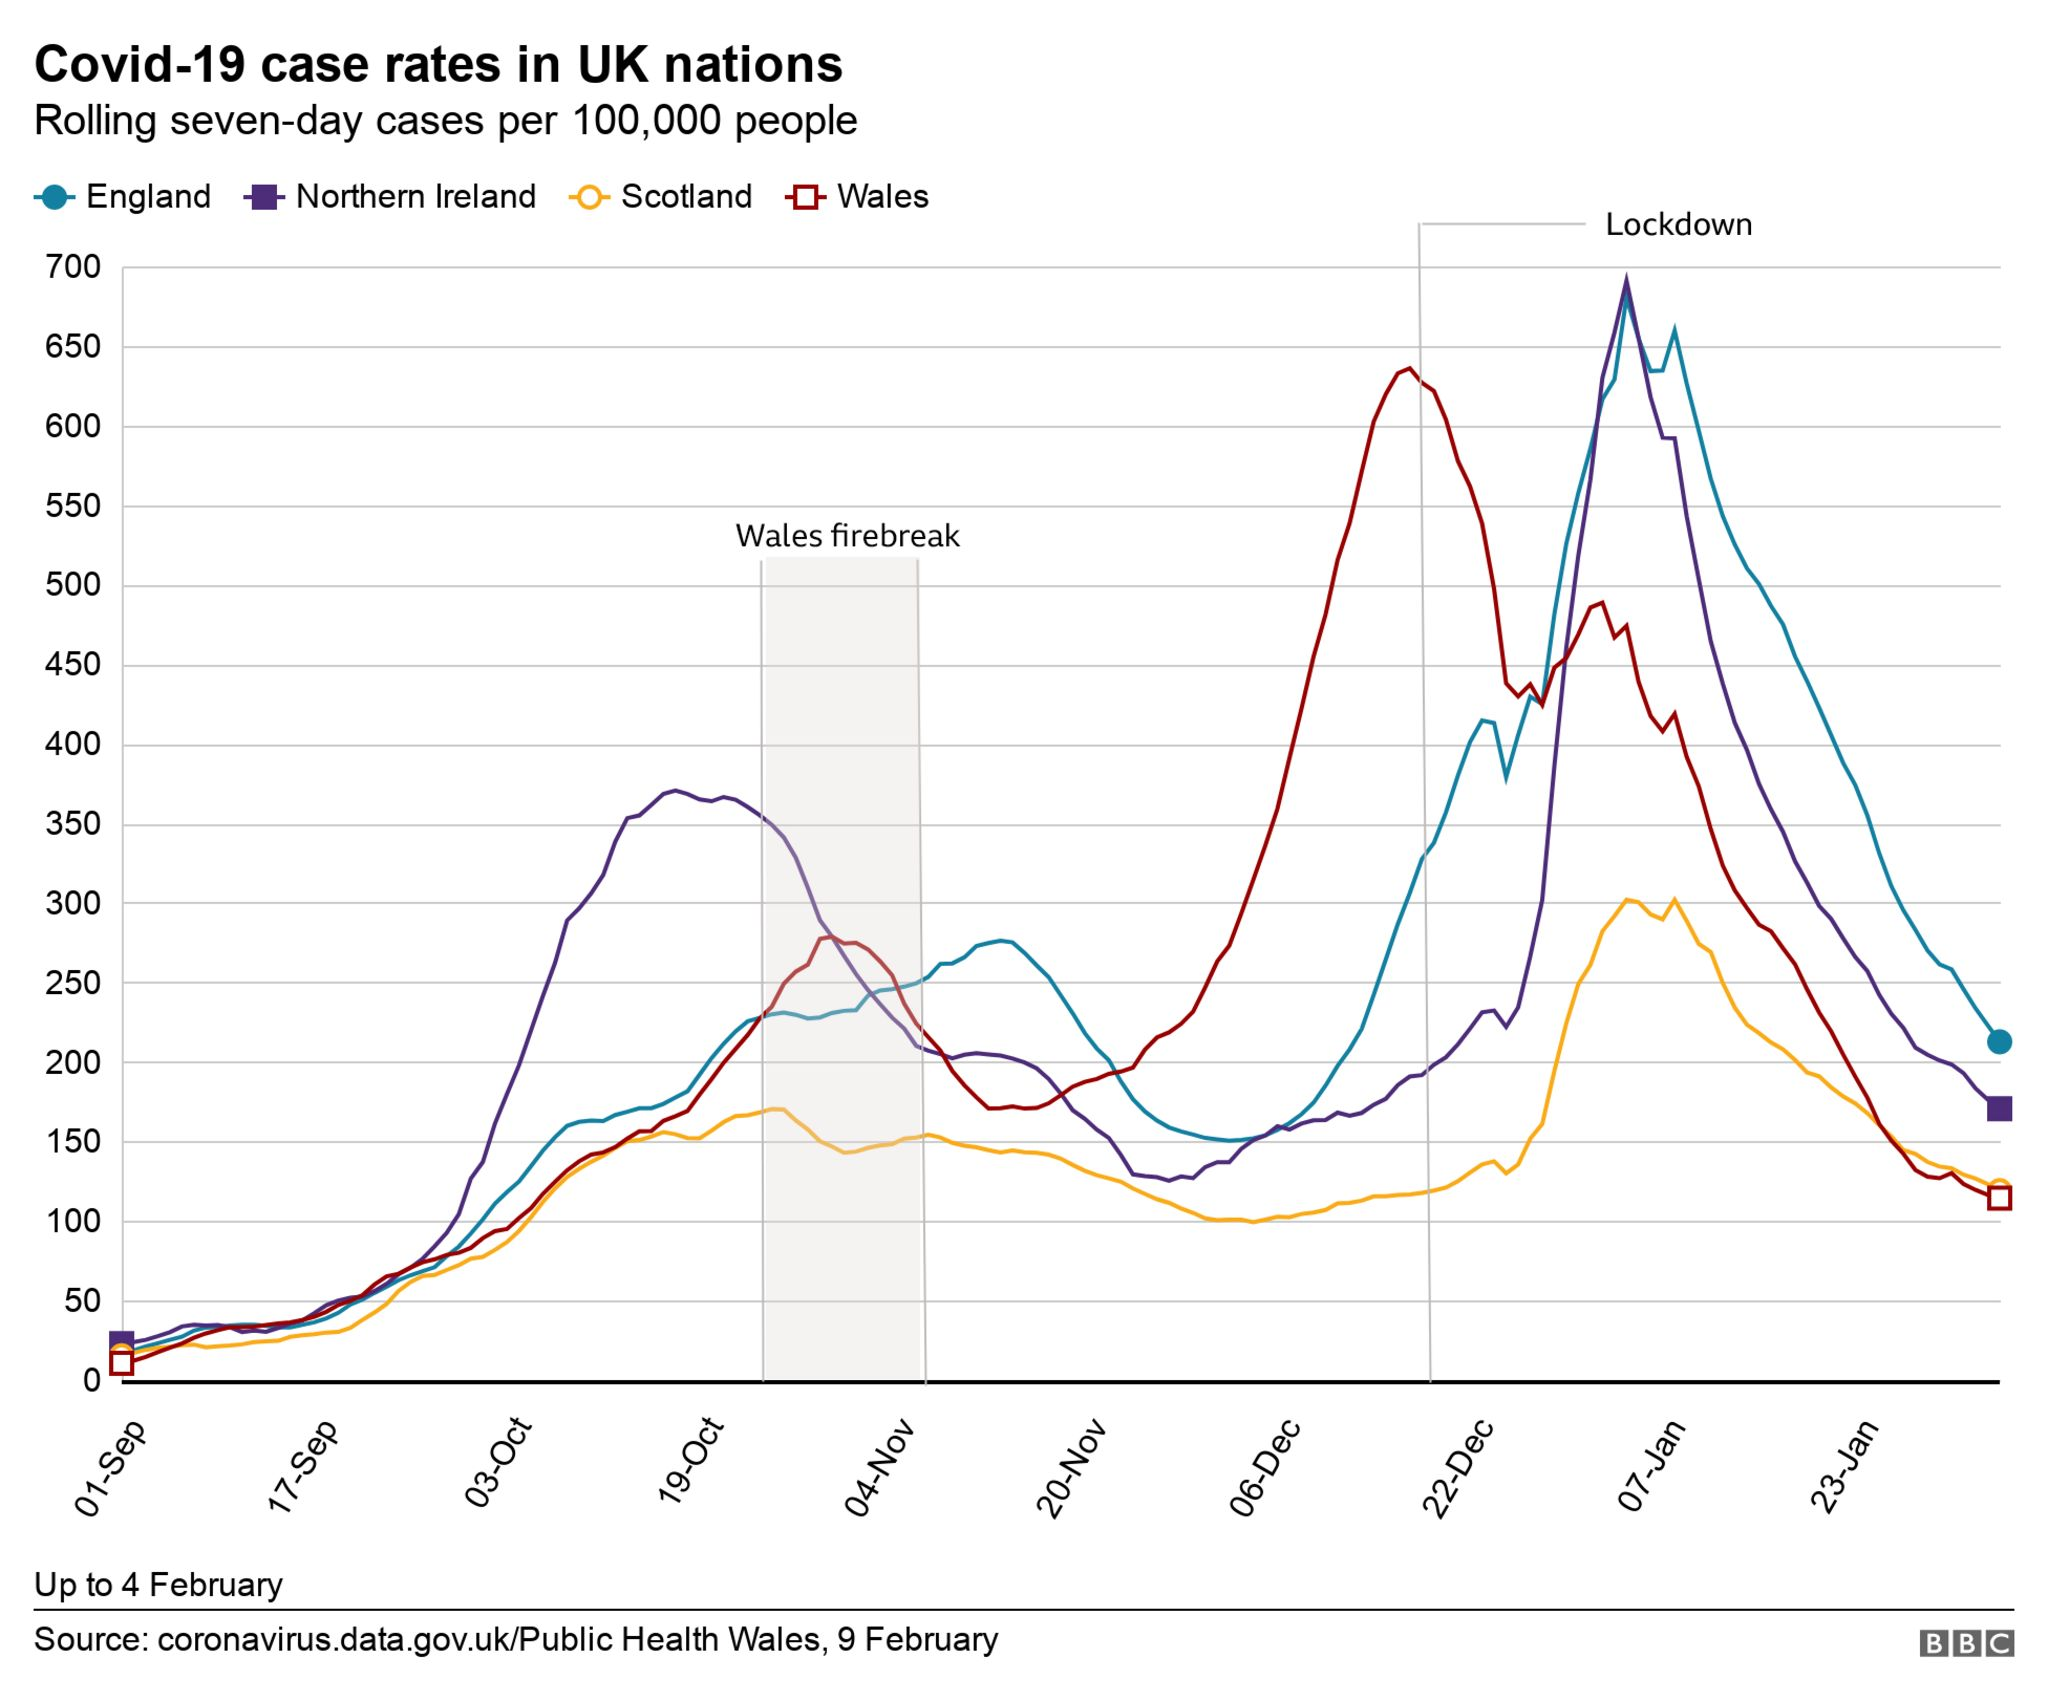 UK case rates